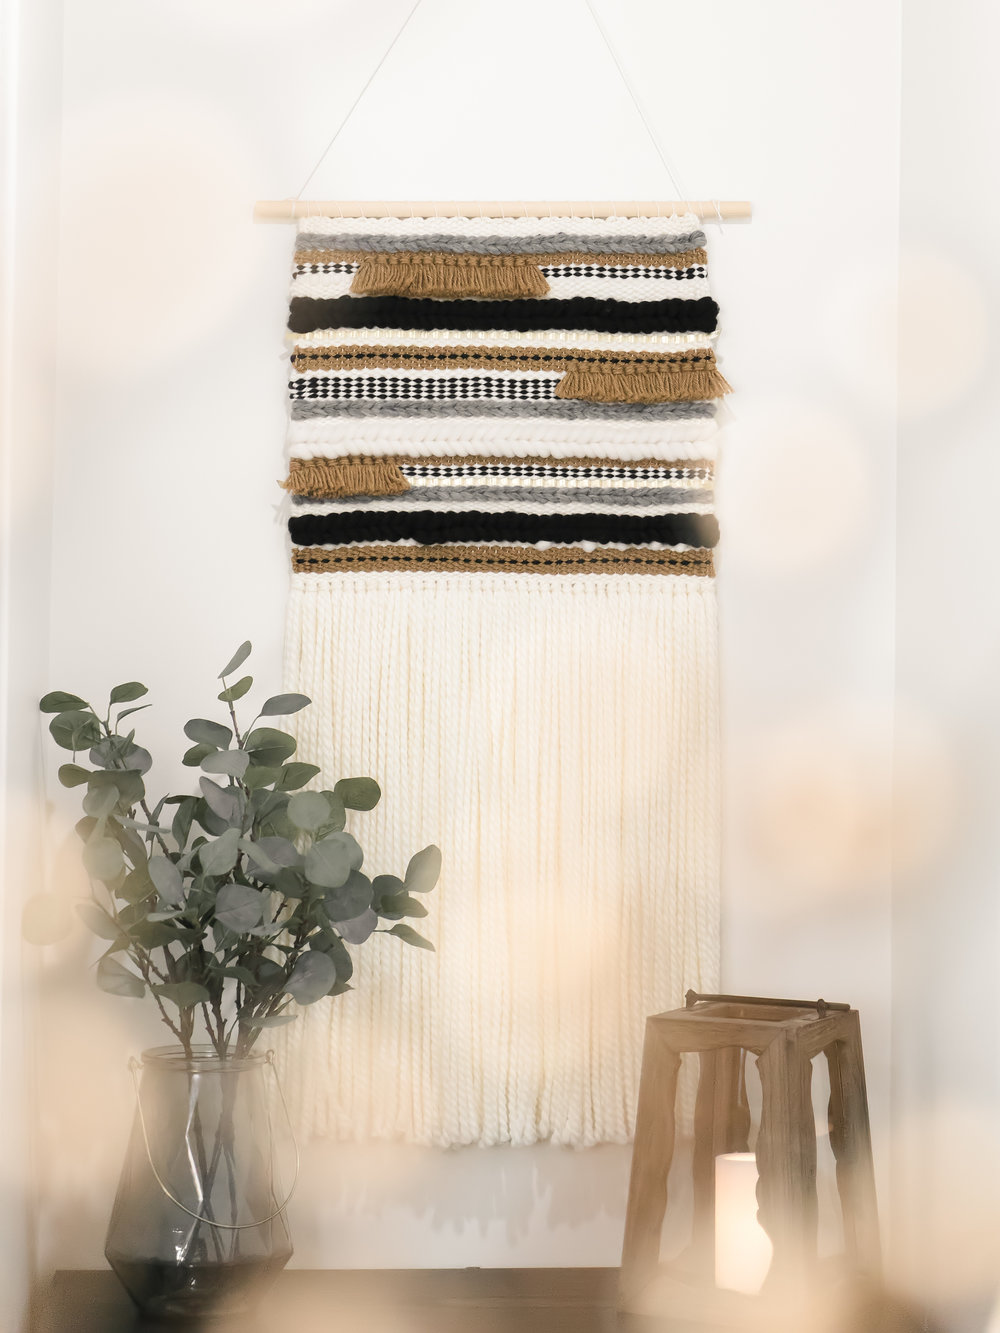 A piece of art and a keepsake. The wall hanging was the inspiration and focal point for pulling together my modern nursery. The texture, the composition and the quality are unparalleled. - -Dallas Spiecker (Merry Golden)